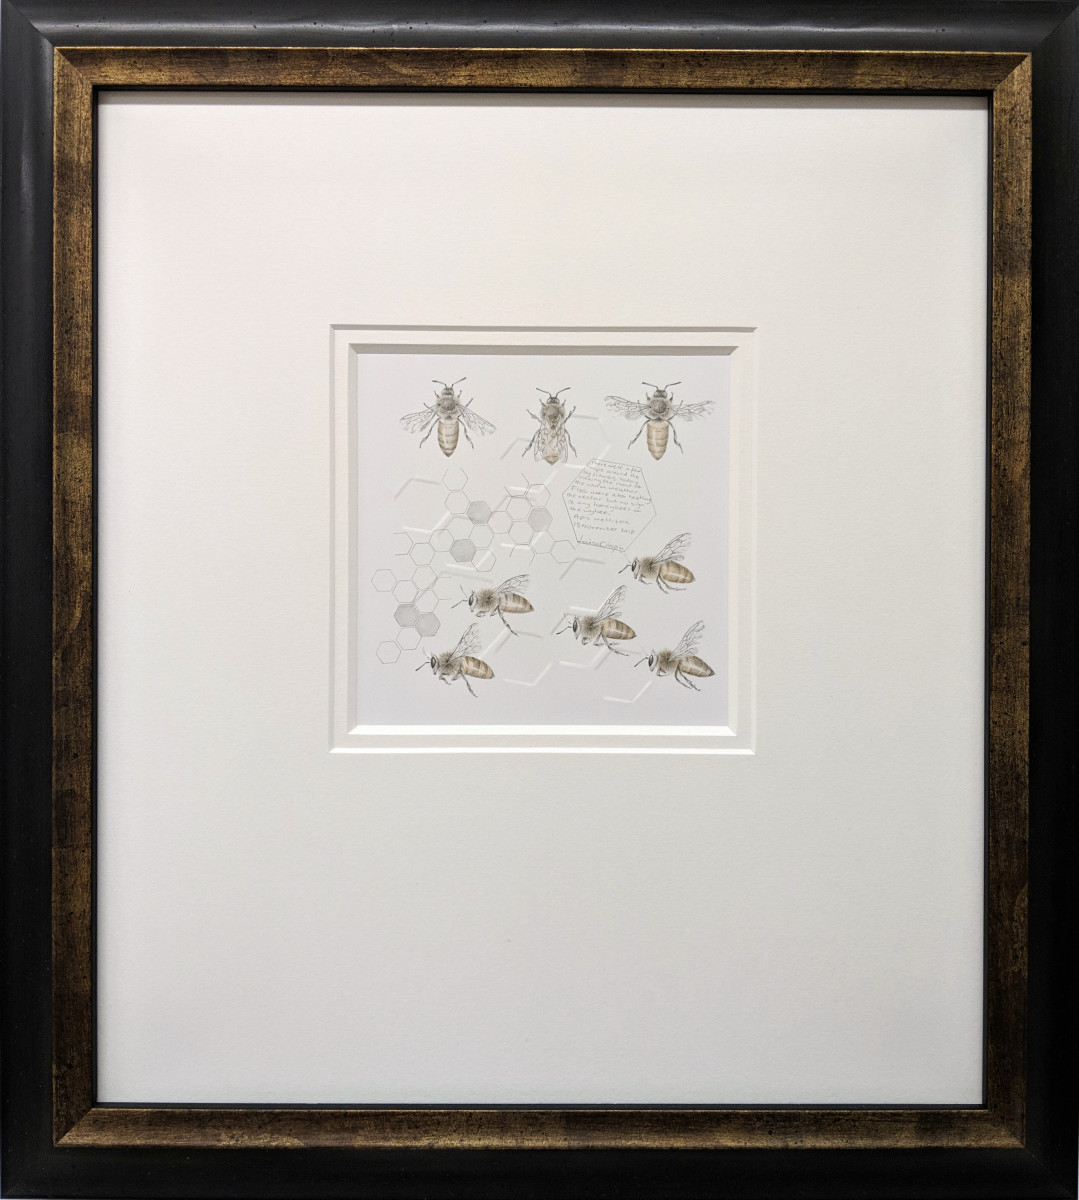 Study of a  HoneyBee 005 by Louisa Crispin